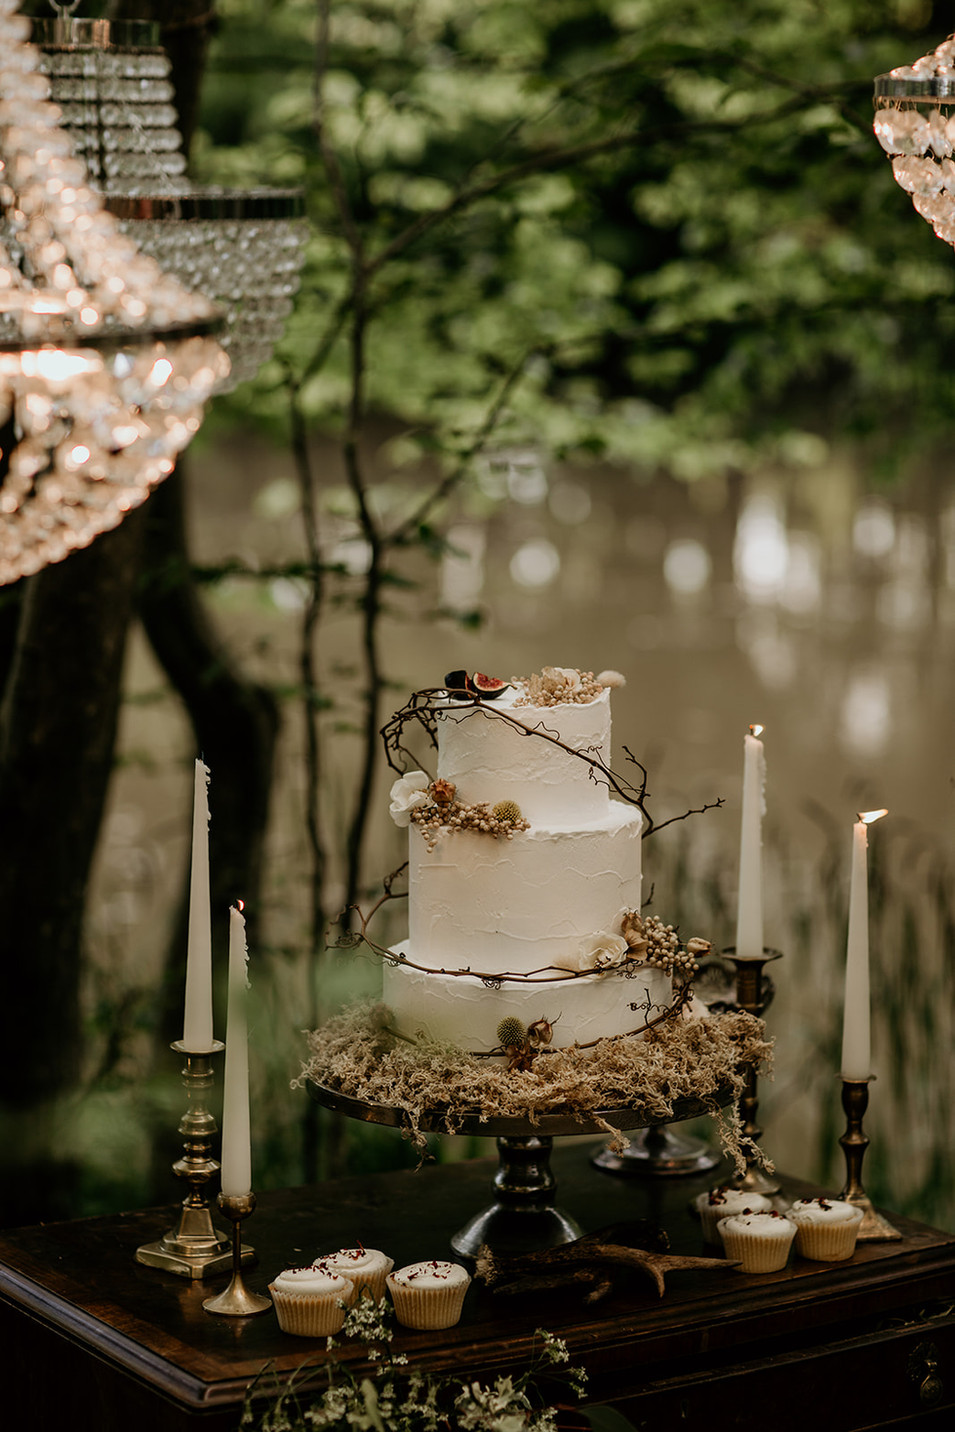 What a beautiful example of a woodland inspired wedding cake?  We have a great selection of trusted suppliers at our finger tips from cake makers to lighting.  More details available upon request.